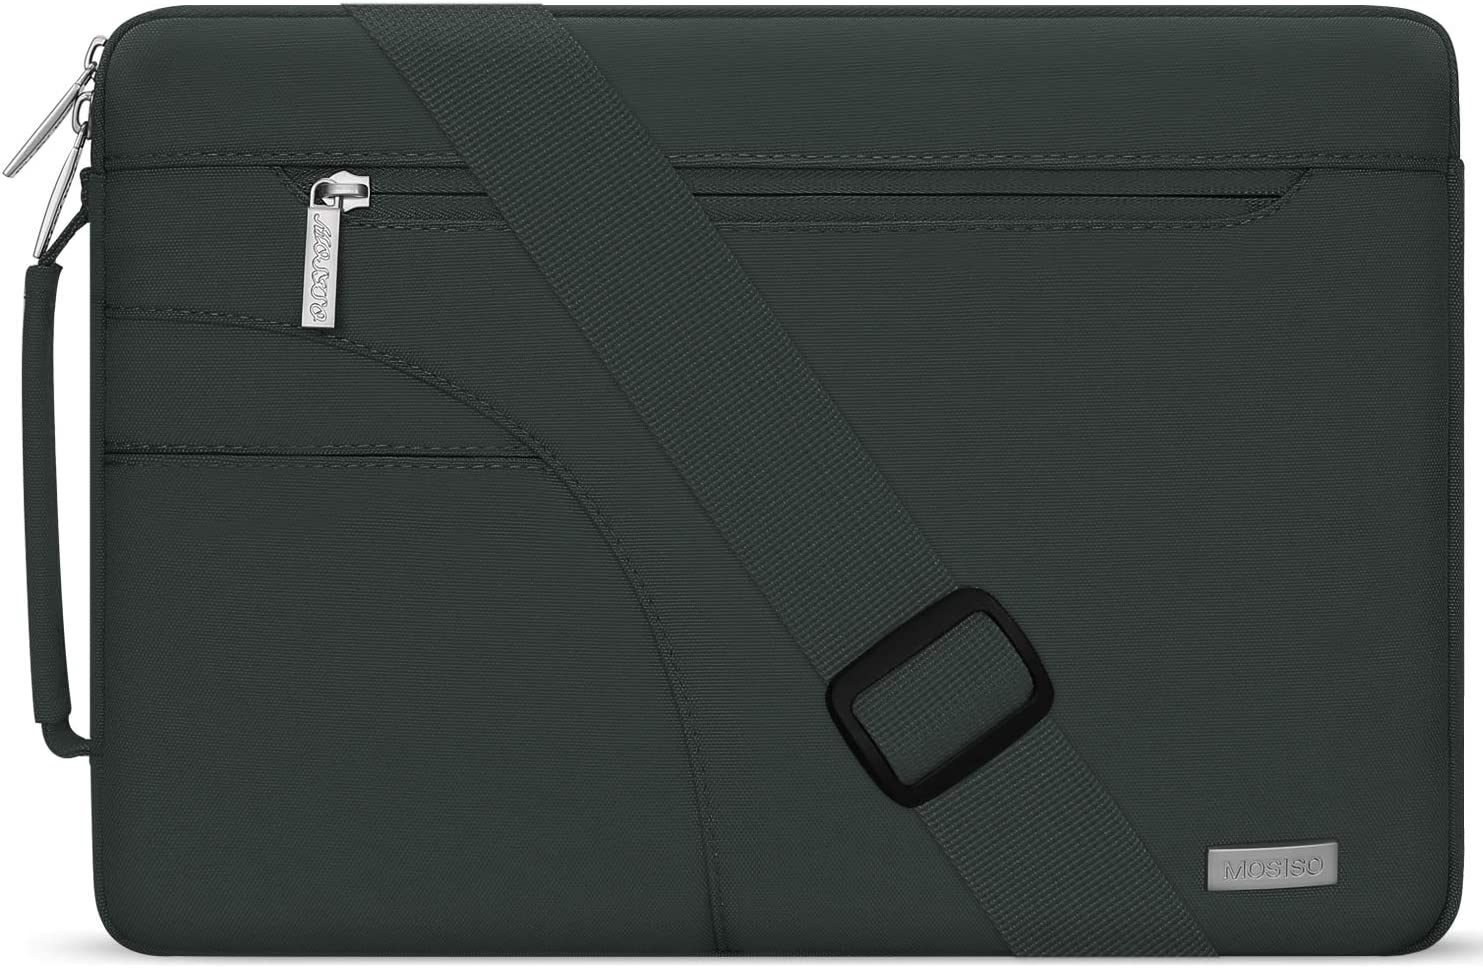 MOSISO Laptop Shoulder Bag Compatible with 13-13.3 inch MacBook Pro, MacBook Air, Notebook Computer, Polyester Briefcase Sleeve with Side Handle, Midnight Green